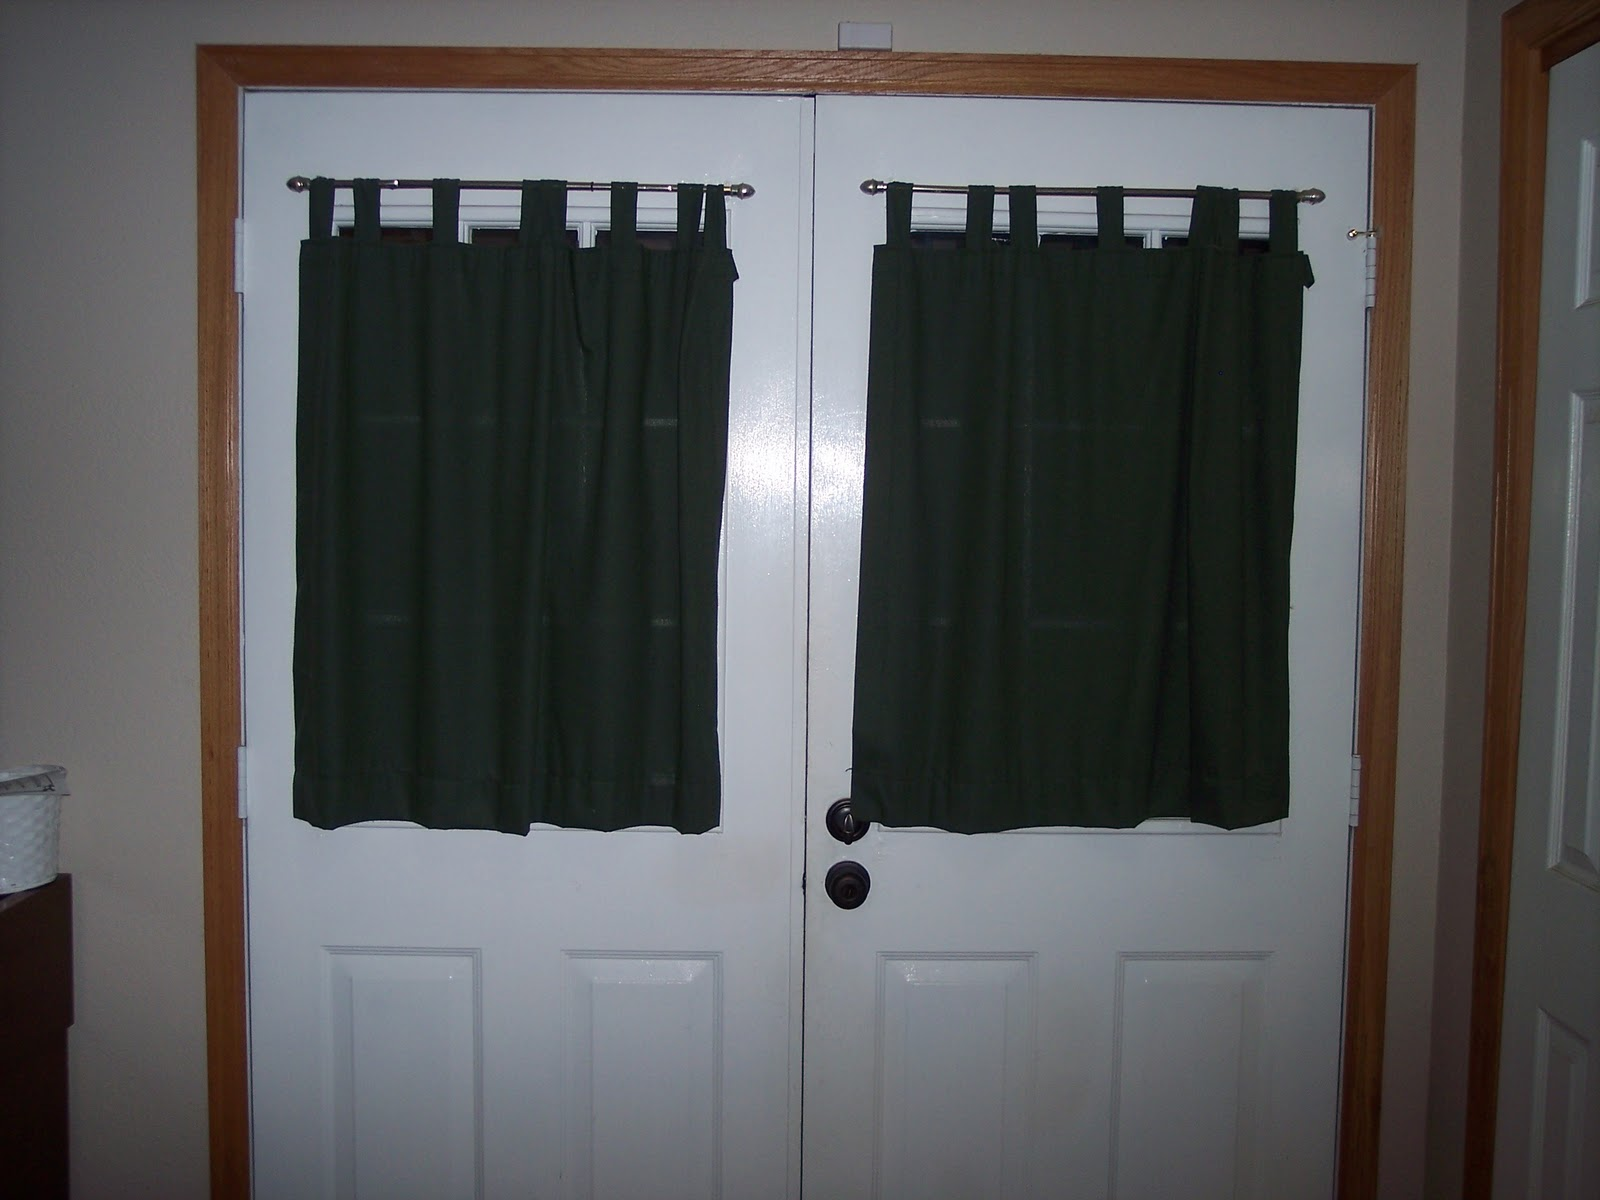 Project 1: Front Door Curtains